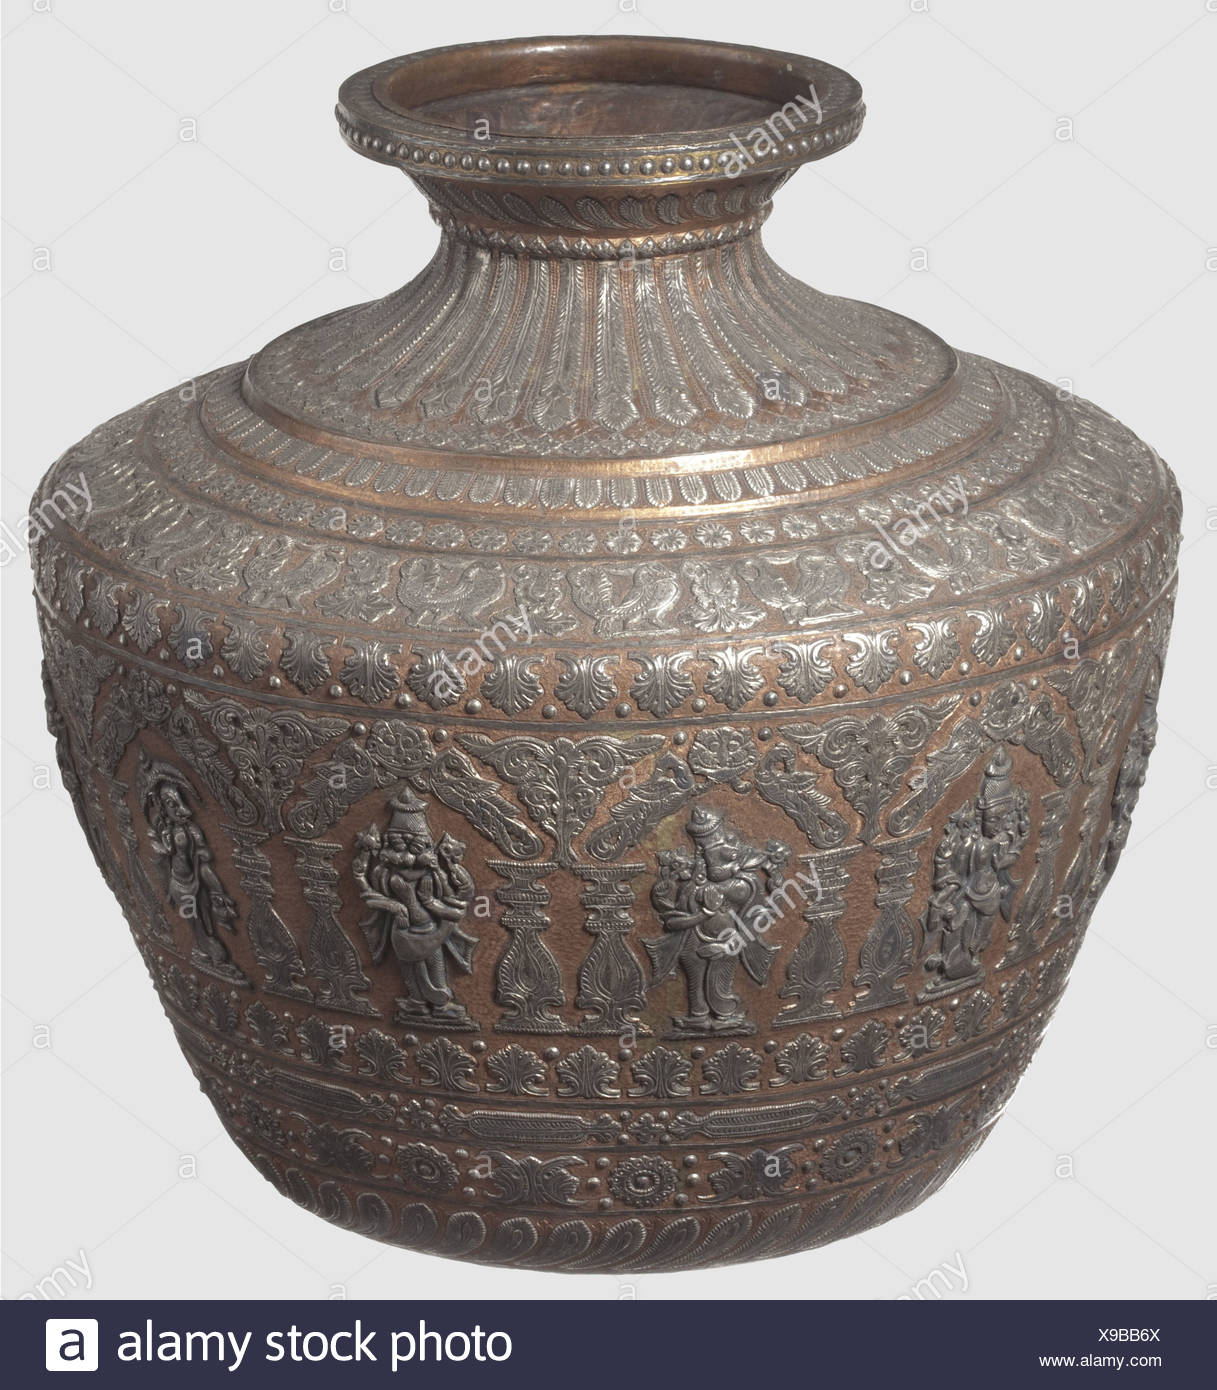 A southern Indian magnificent silver-inlaid vase, 19th century Tapered and chased body made of copper with short, flared neck. The exterior is completely inlaid with beaded bands, peacocks and deities. Rich ornamental decorations with finely engraved and chiselled silver. The silver darkened in some parts. Elaborately worked vase in good condition. Height 31.5 cm, historic, historical, 19th century, object, objects, stills, clipping, clippings, cut out, cut-out, cut-outs, fine arts, art, artful, Additional-Rights-Clearences-NA - Stock Image